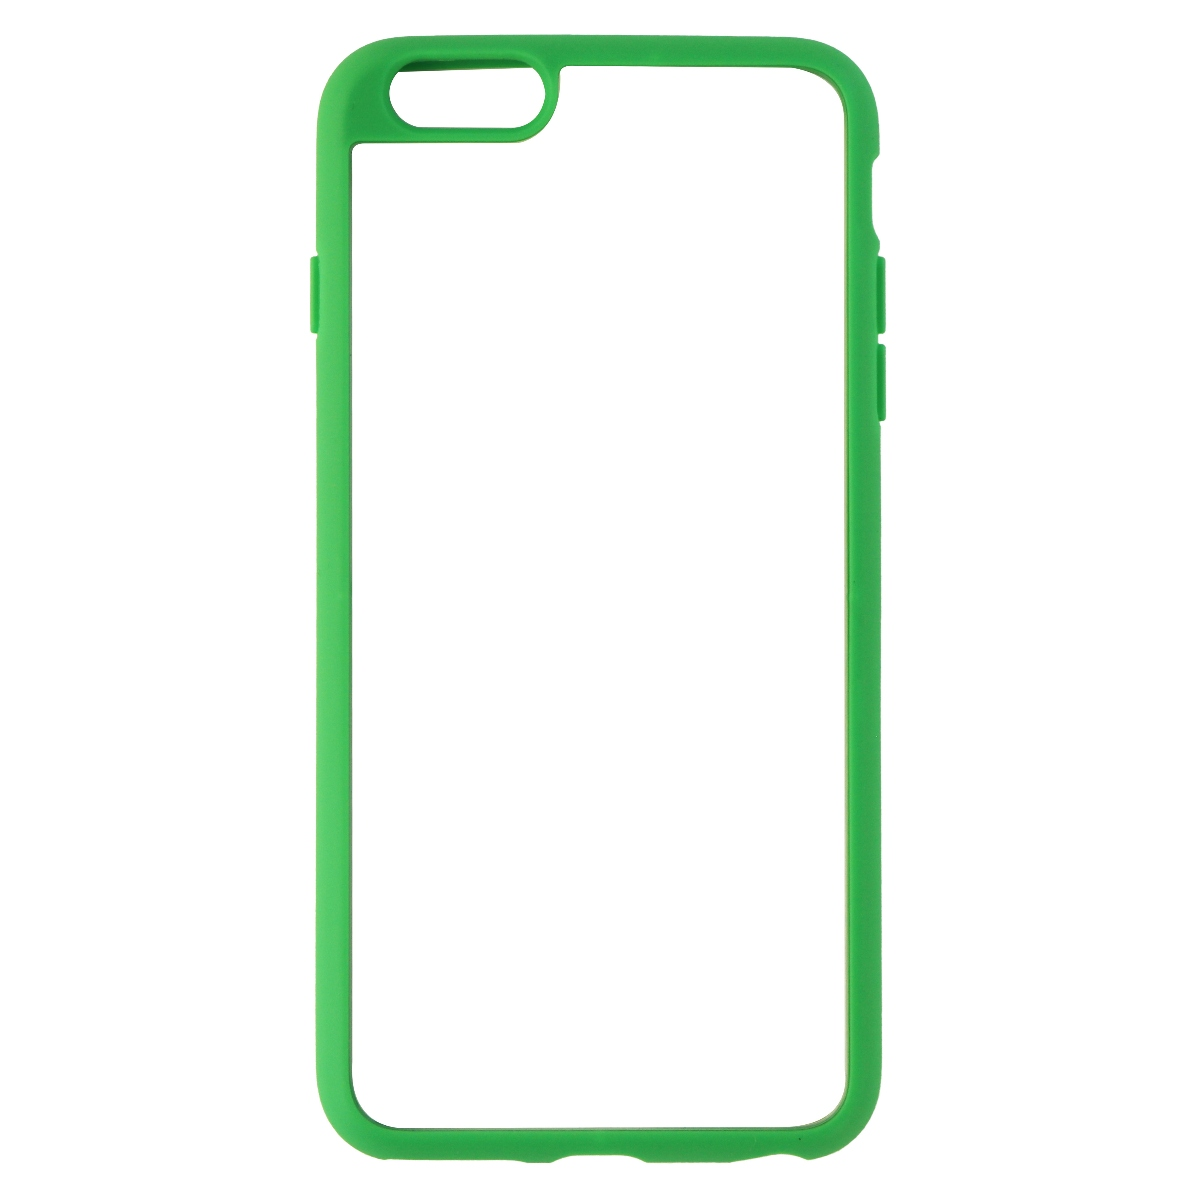 Wireless One Nuclear Series Protective Case for iPhone 6s Plus 6 Plus - Green